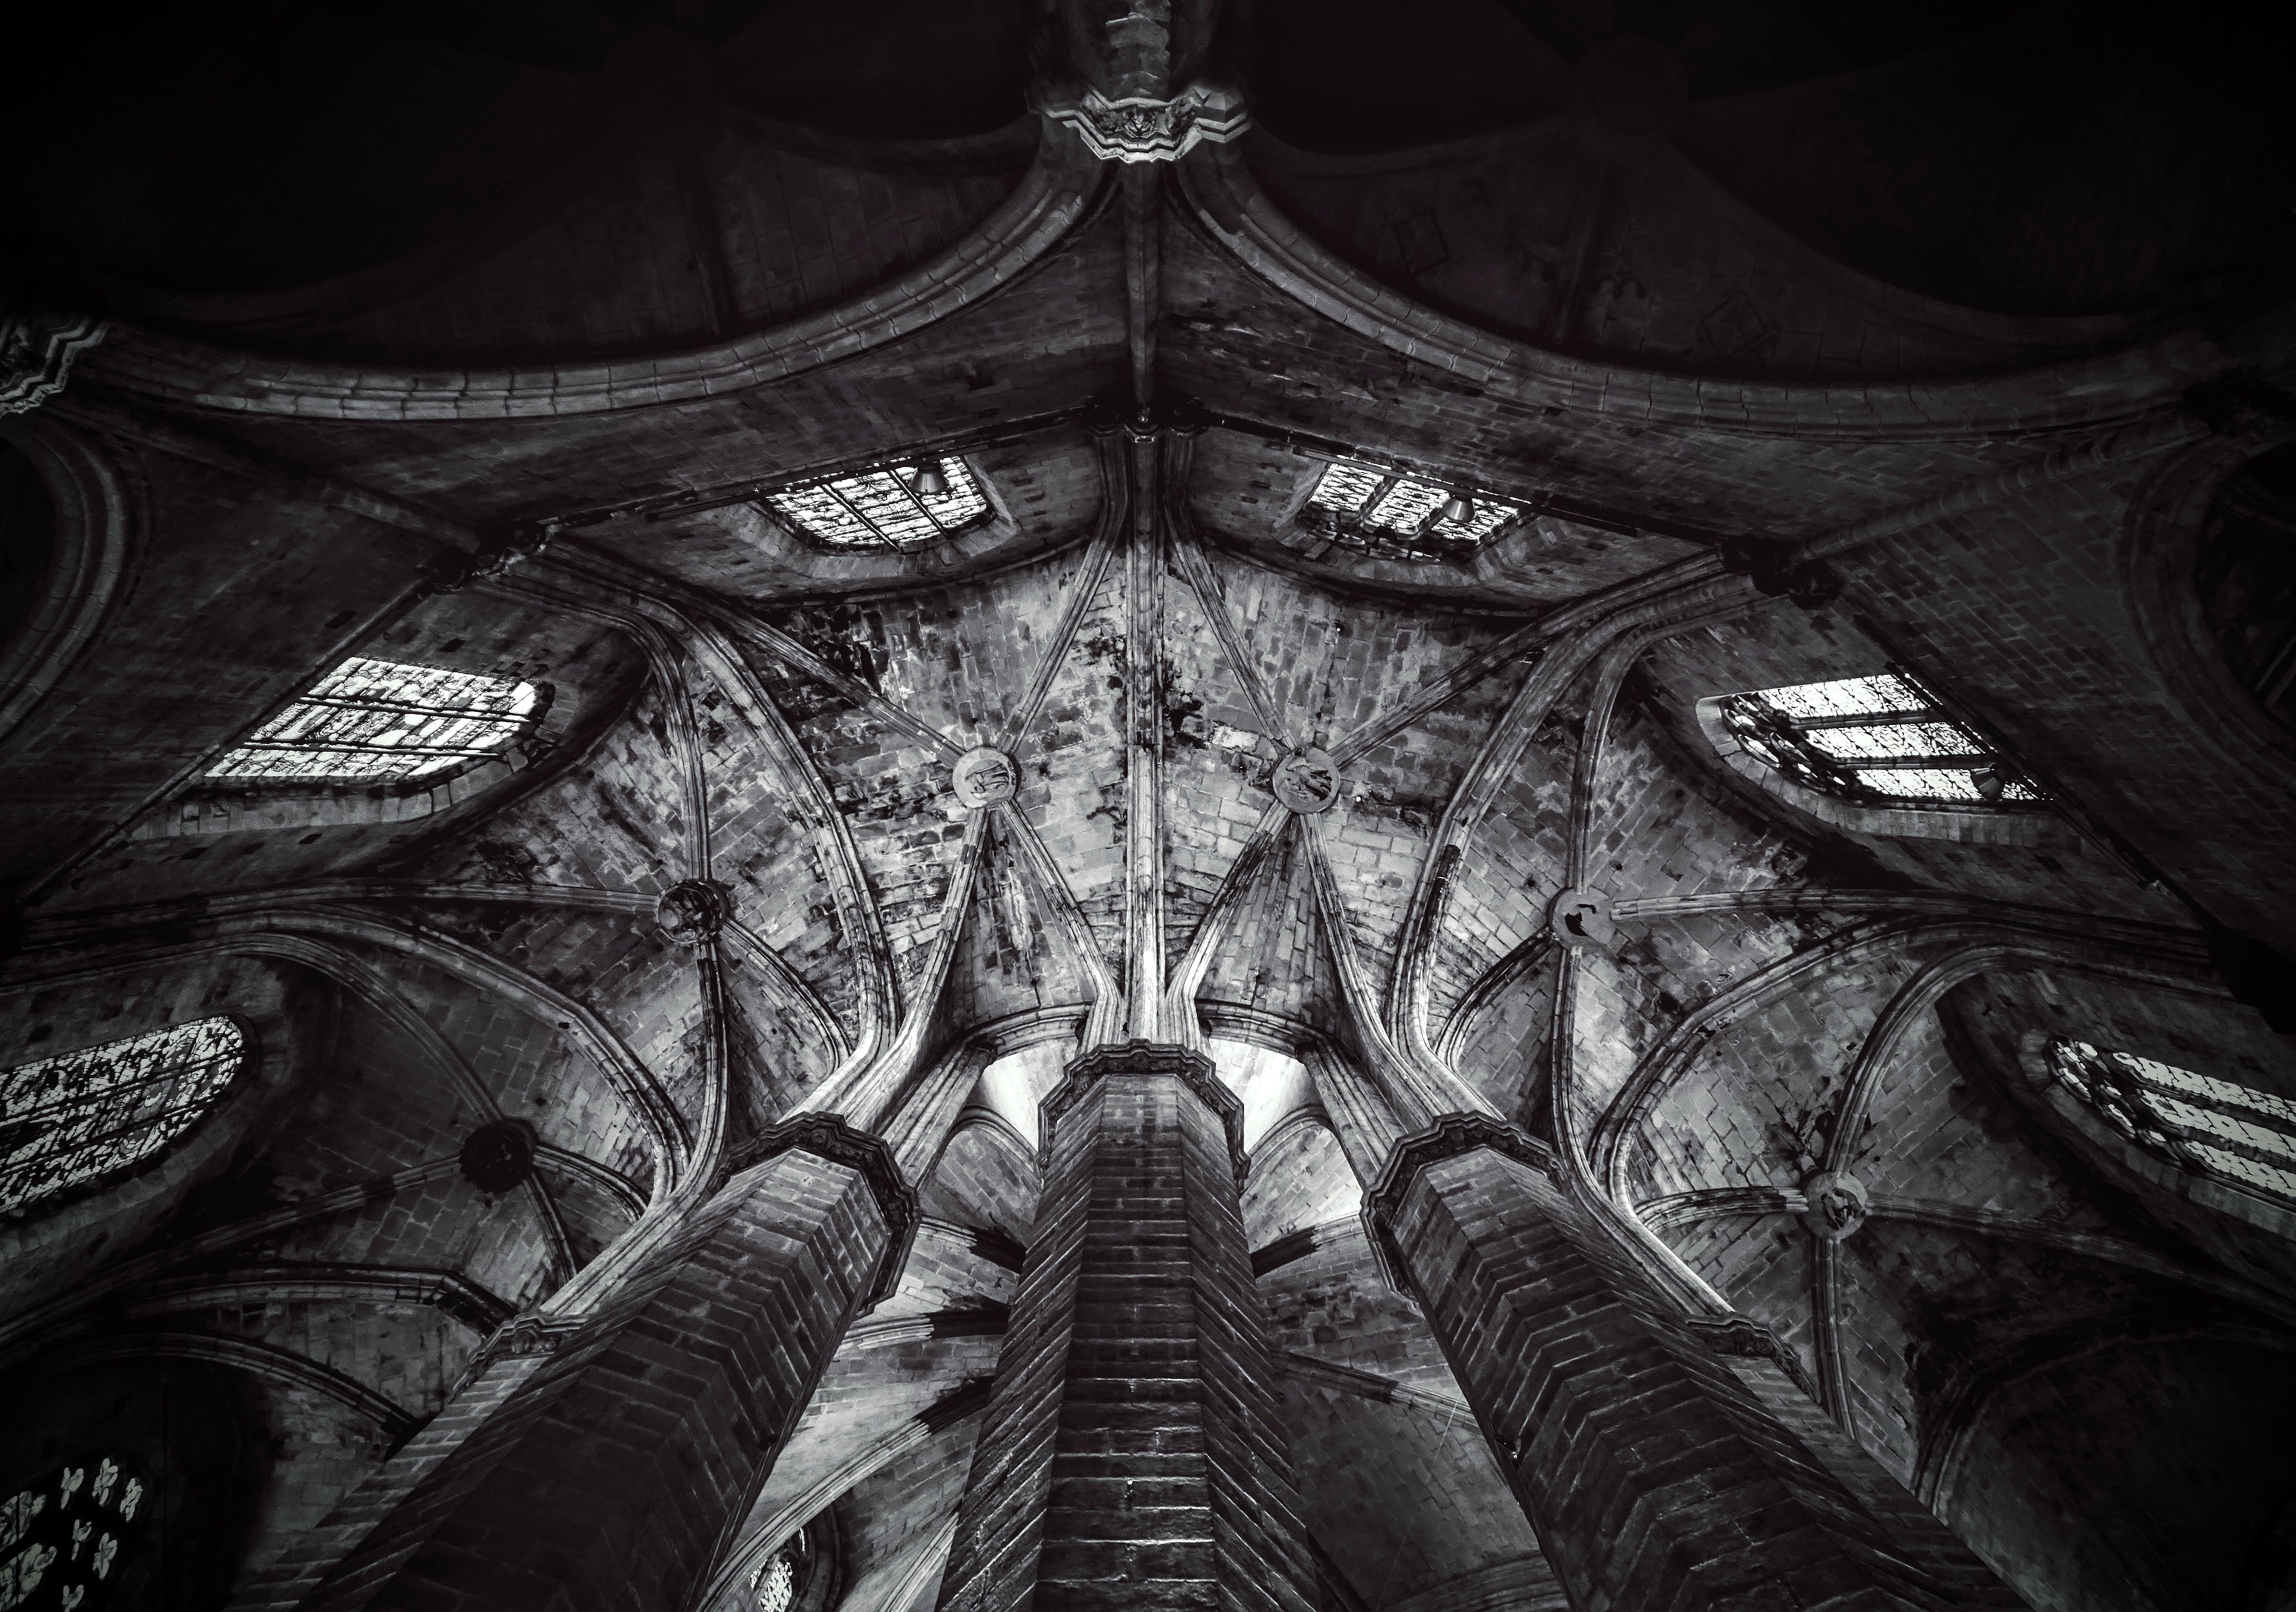 Black and white shot of gothic ceiling, pillars and stained glass window in Barcelona